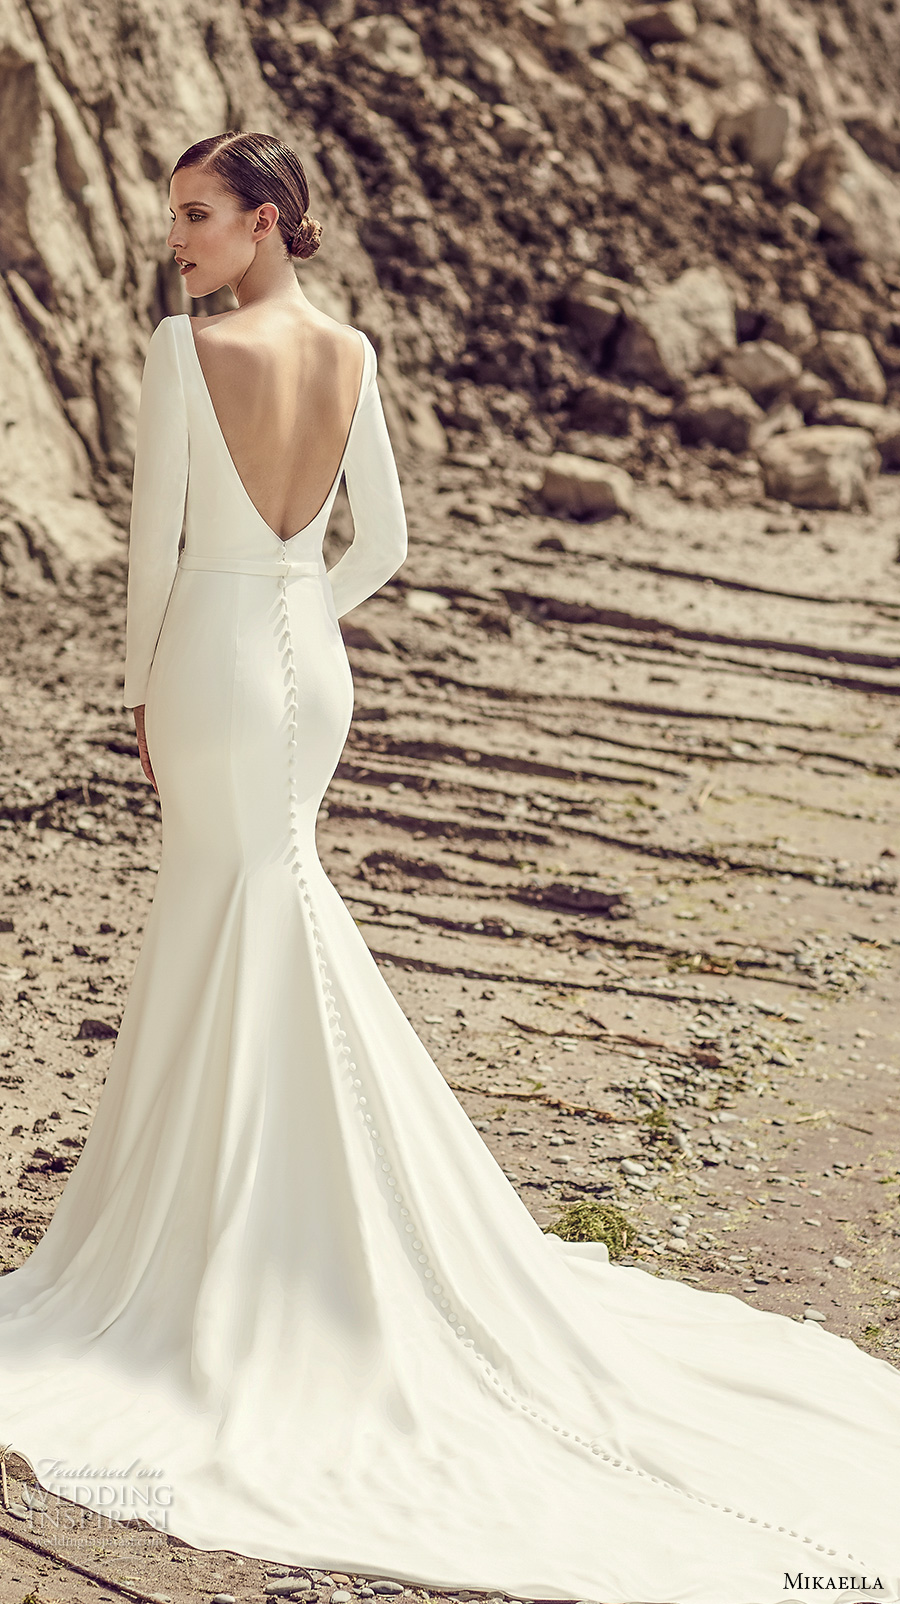 Elegant Sheath Wedding Gowns Ideas 2017 Hazard 65 Easy Gorgeous